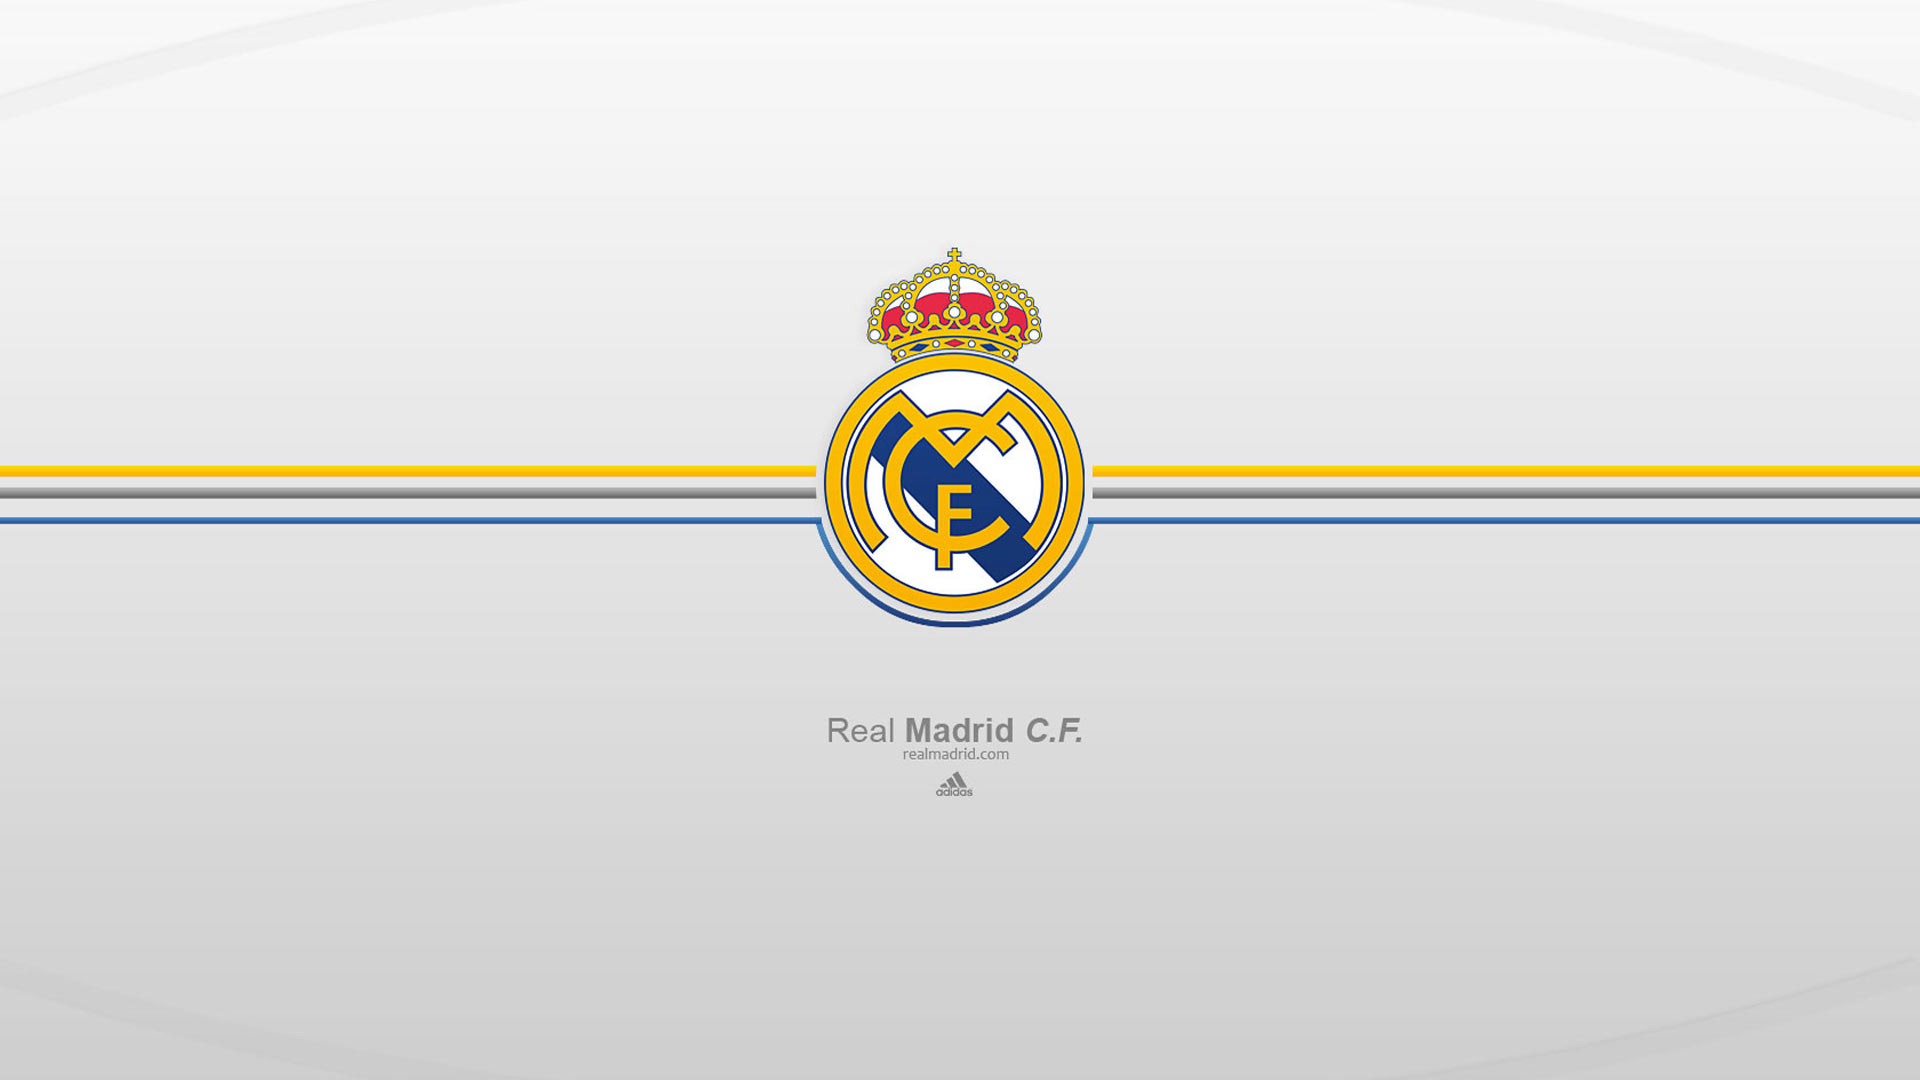 Real Madrid Wallpaper For Pc